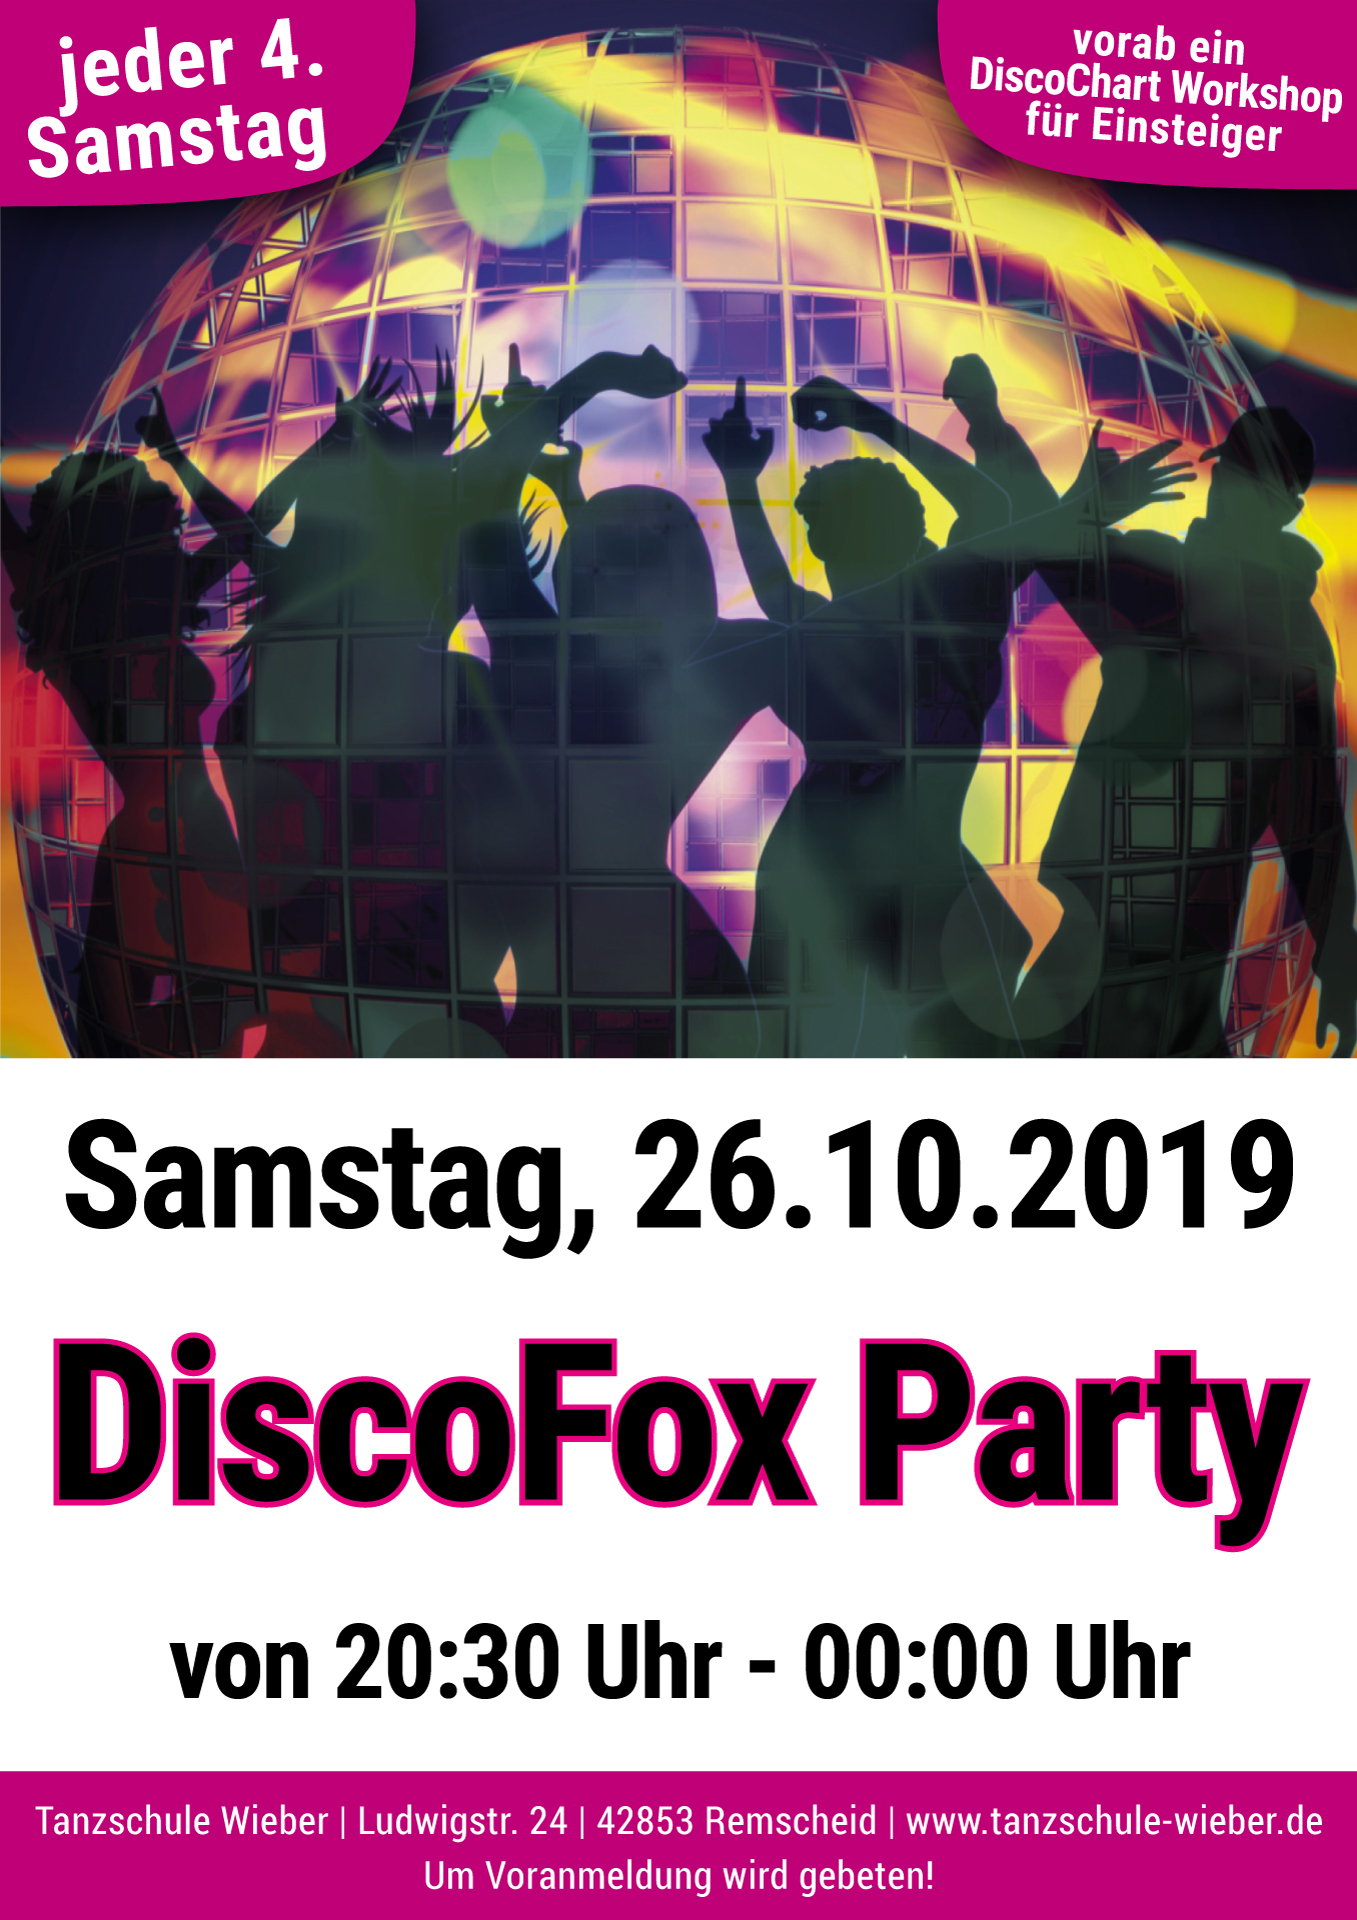 dfparty-flyer_2019_10_26.jpg